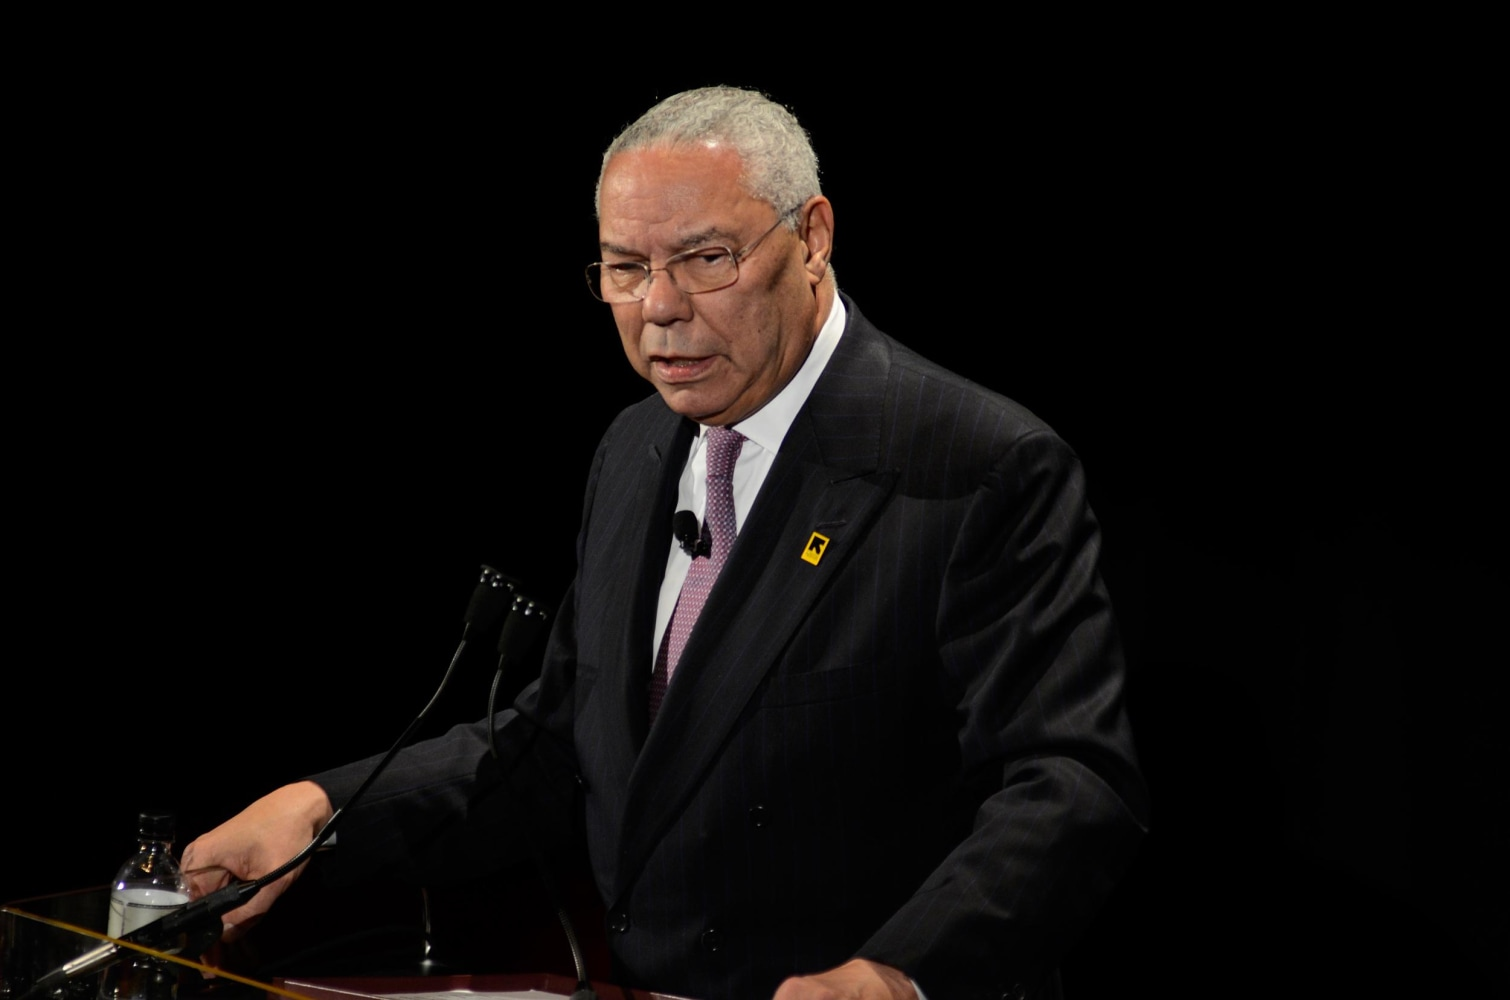 State IG: Classified email found from Powell, Rice tenures